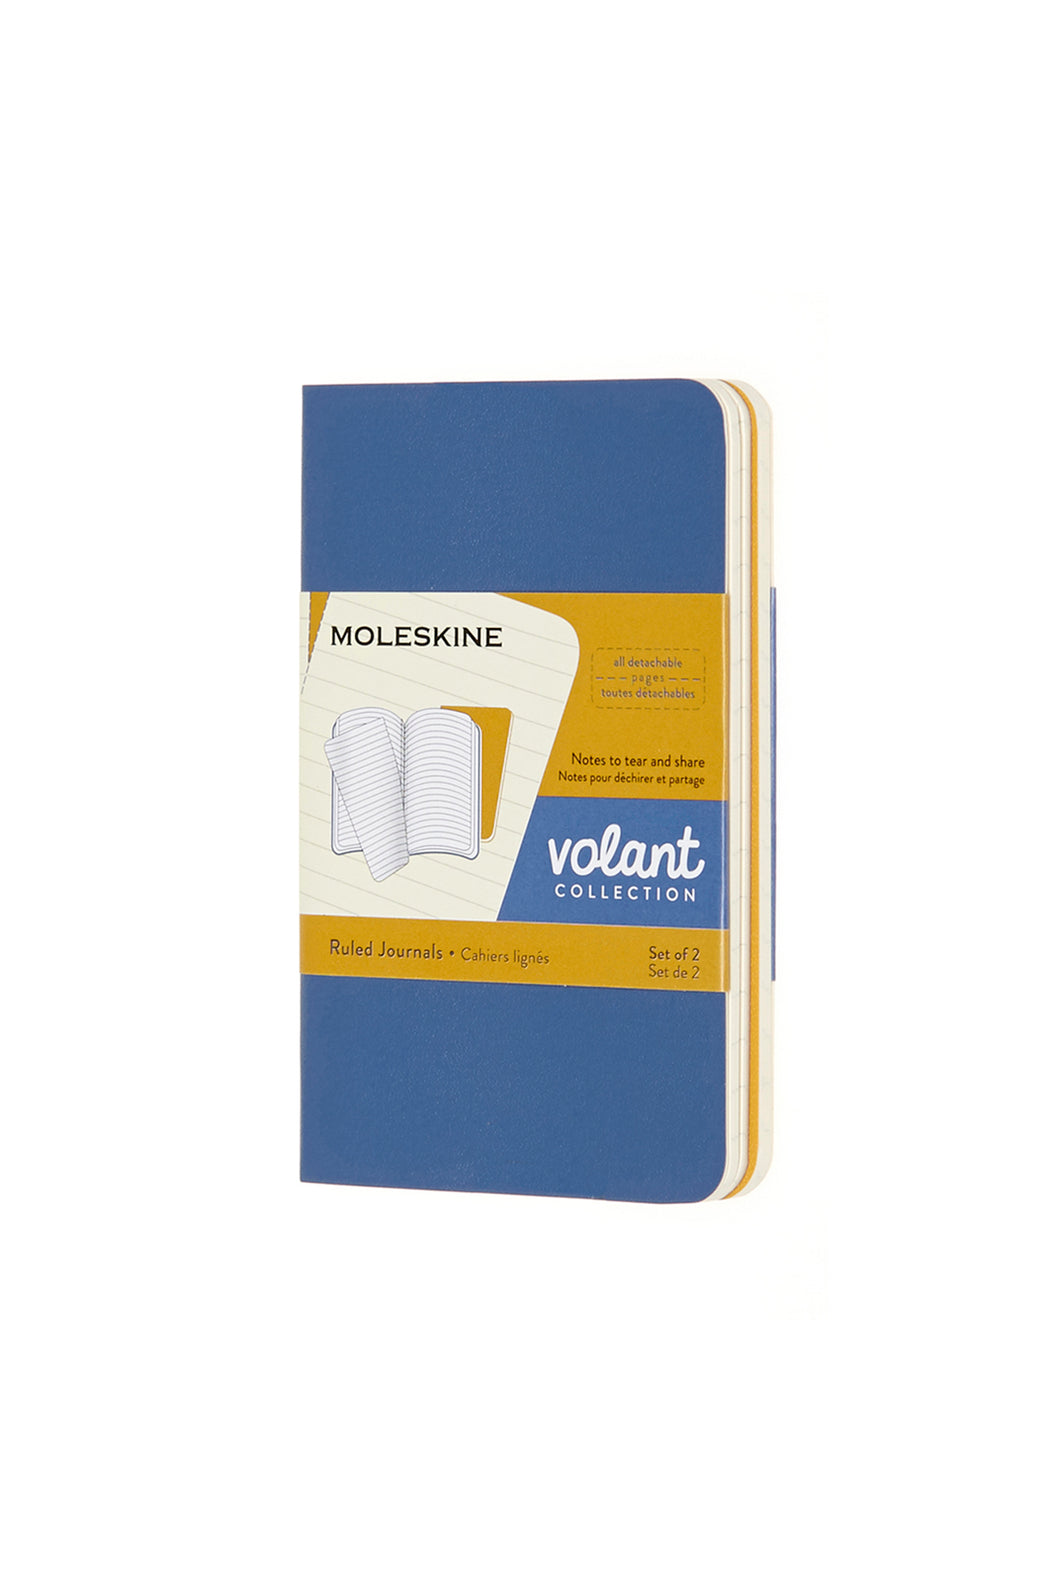 Moleskine - Volant Notebook - Ruled - Extra Small (6.5x10cm) - Forget Me Not Blue & Amber Yellow